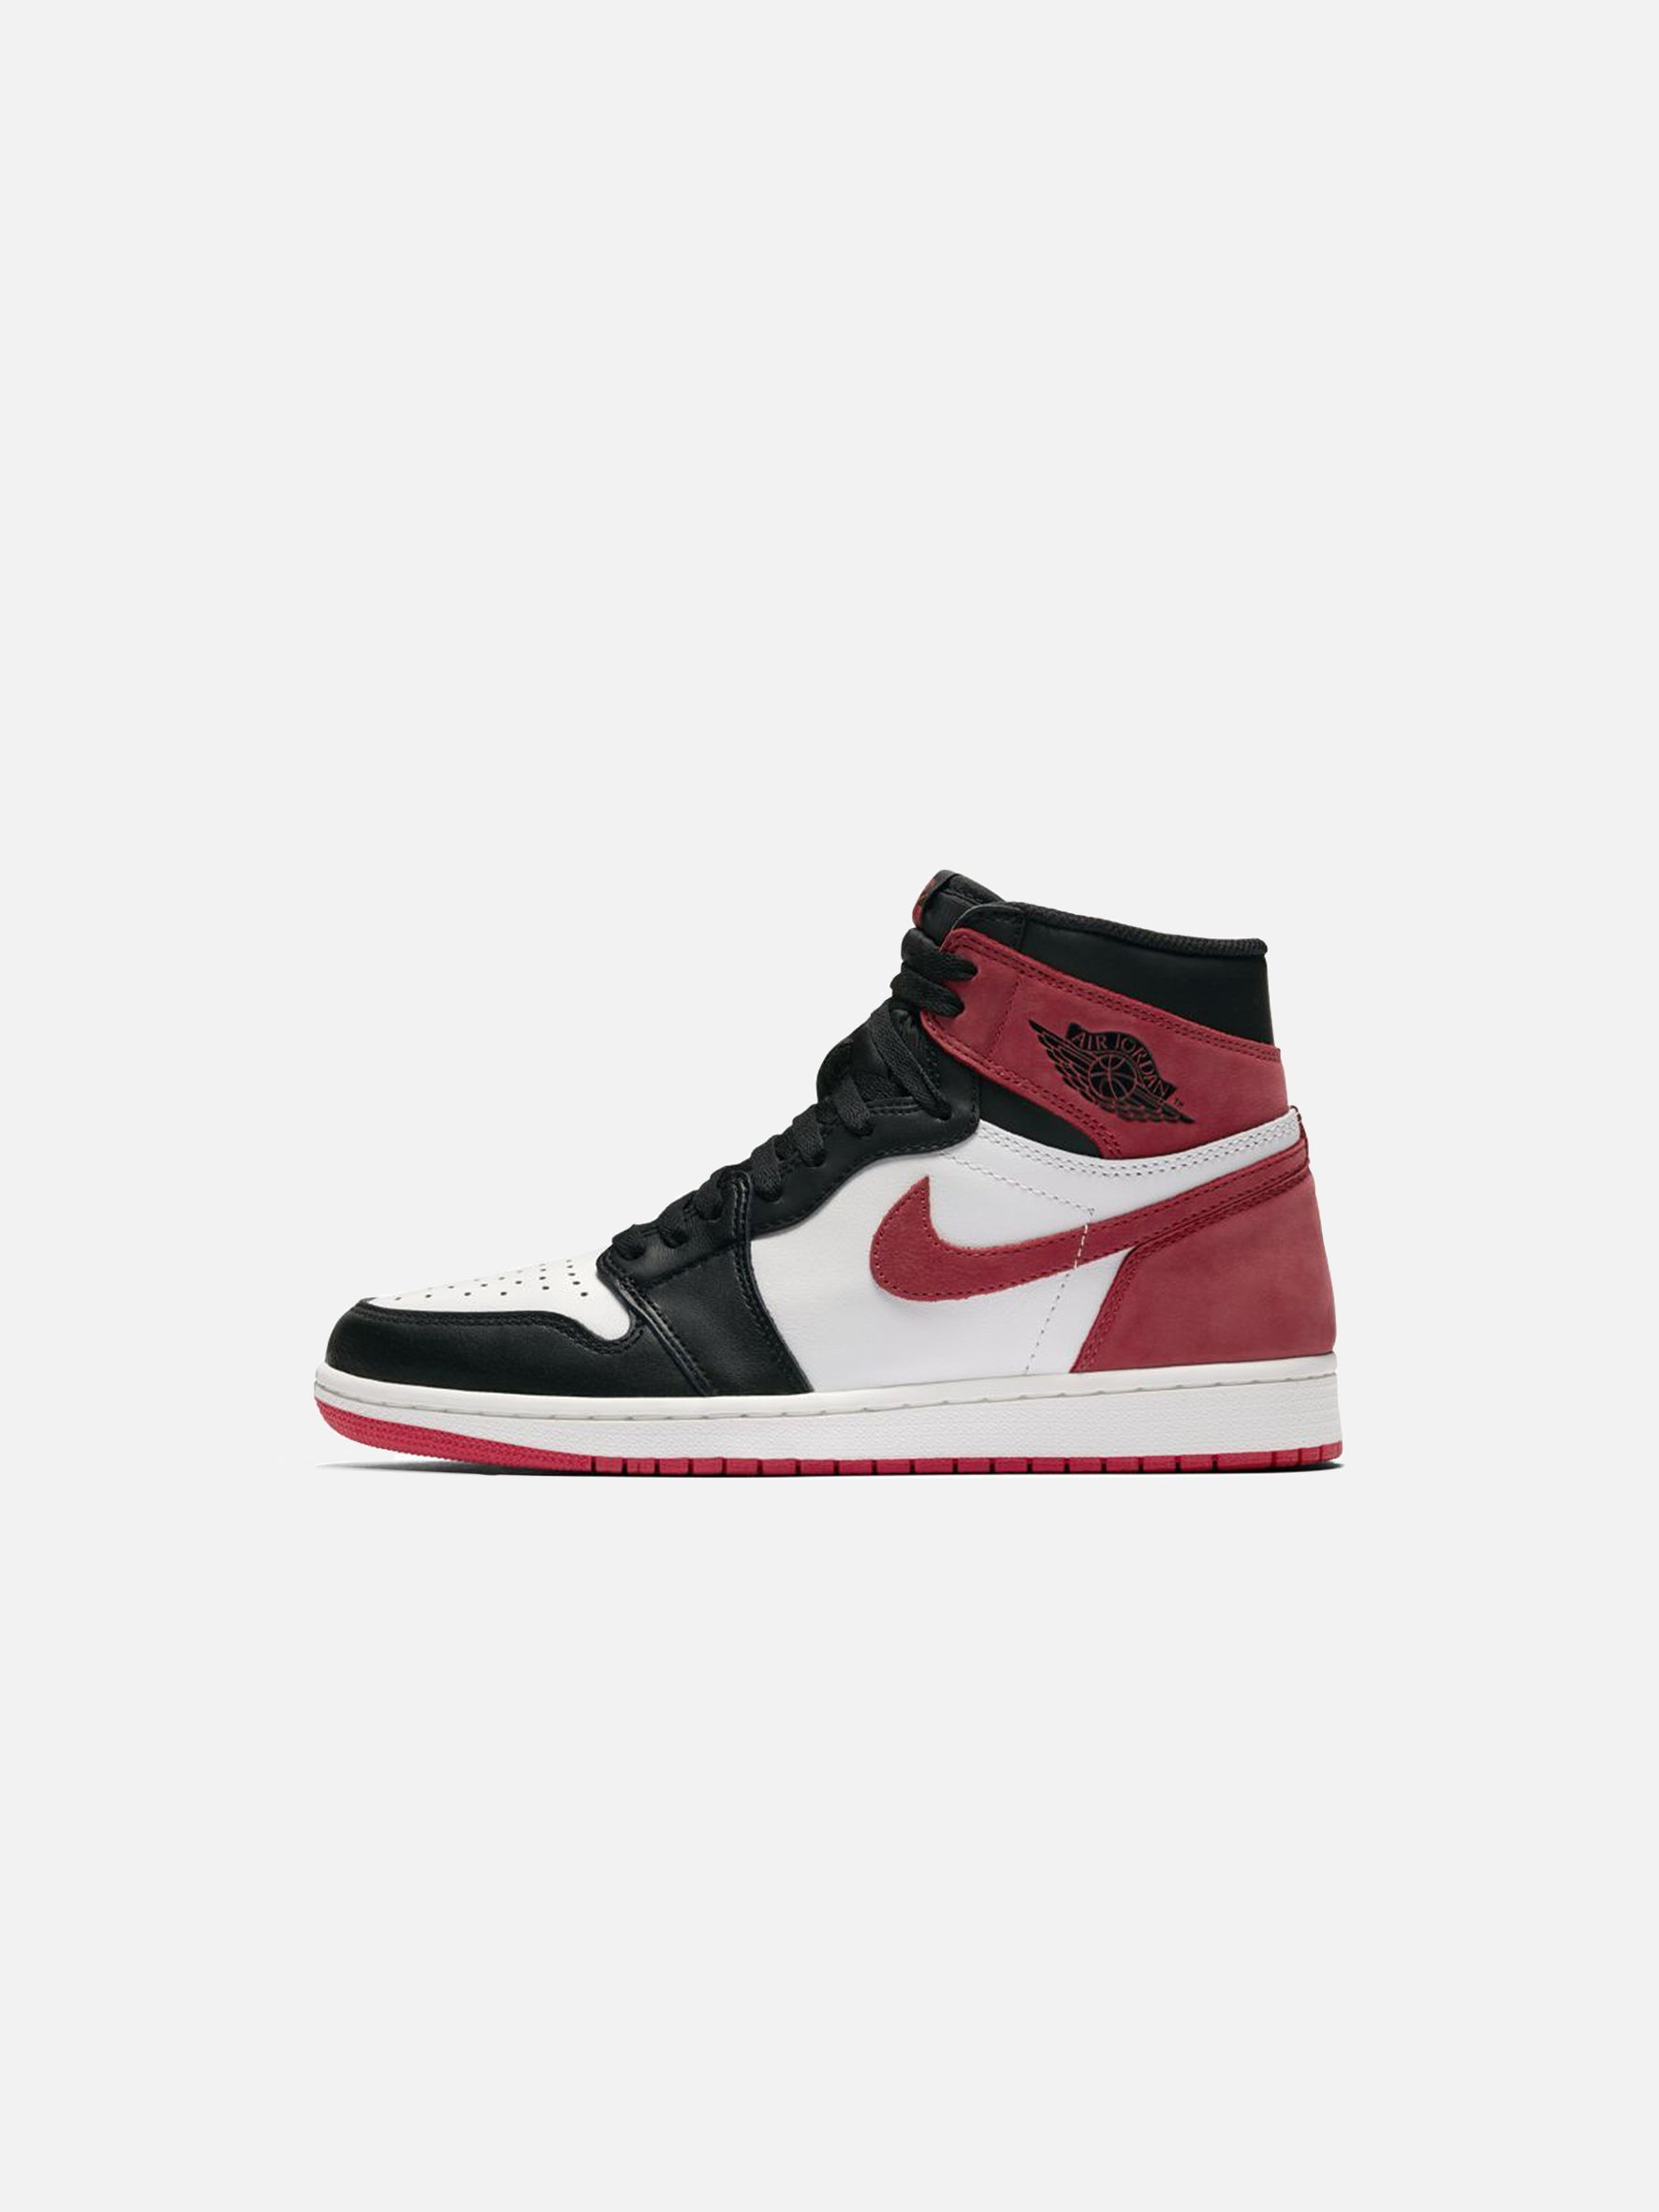 Nike Air Jordan 1 Retro High Track Red